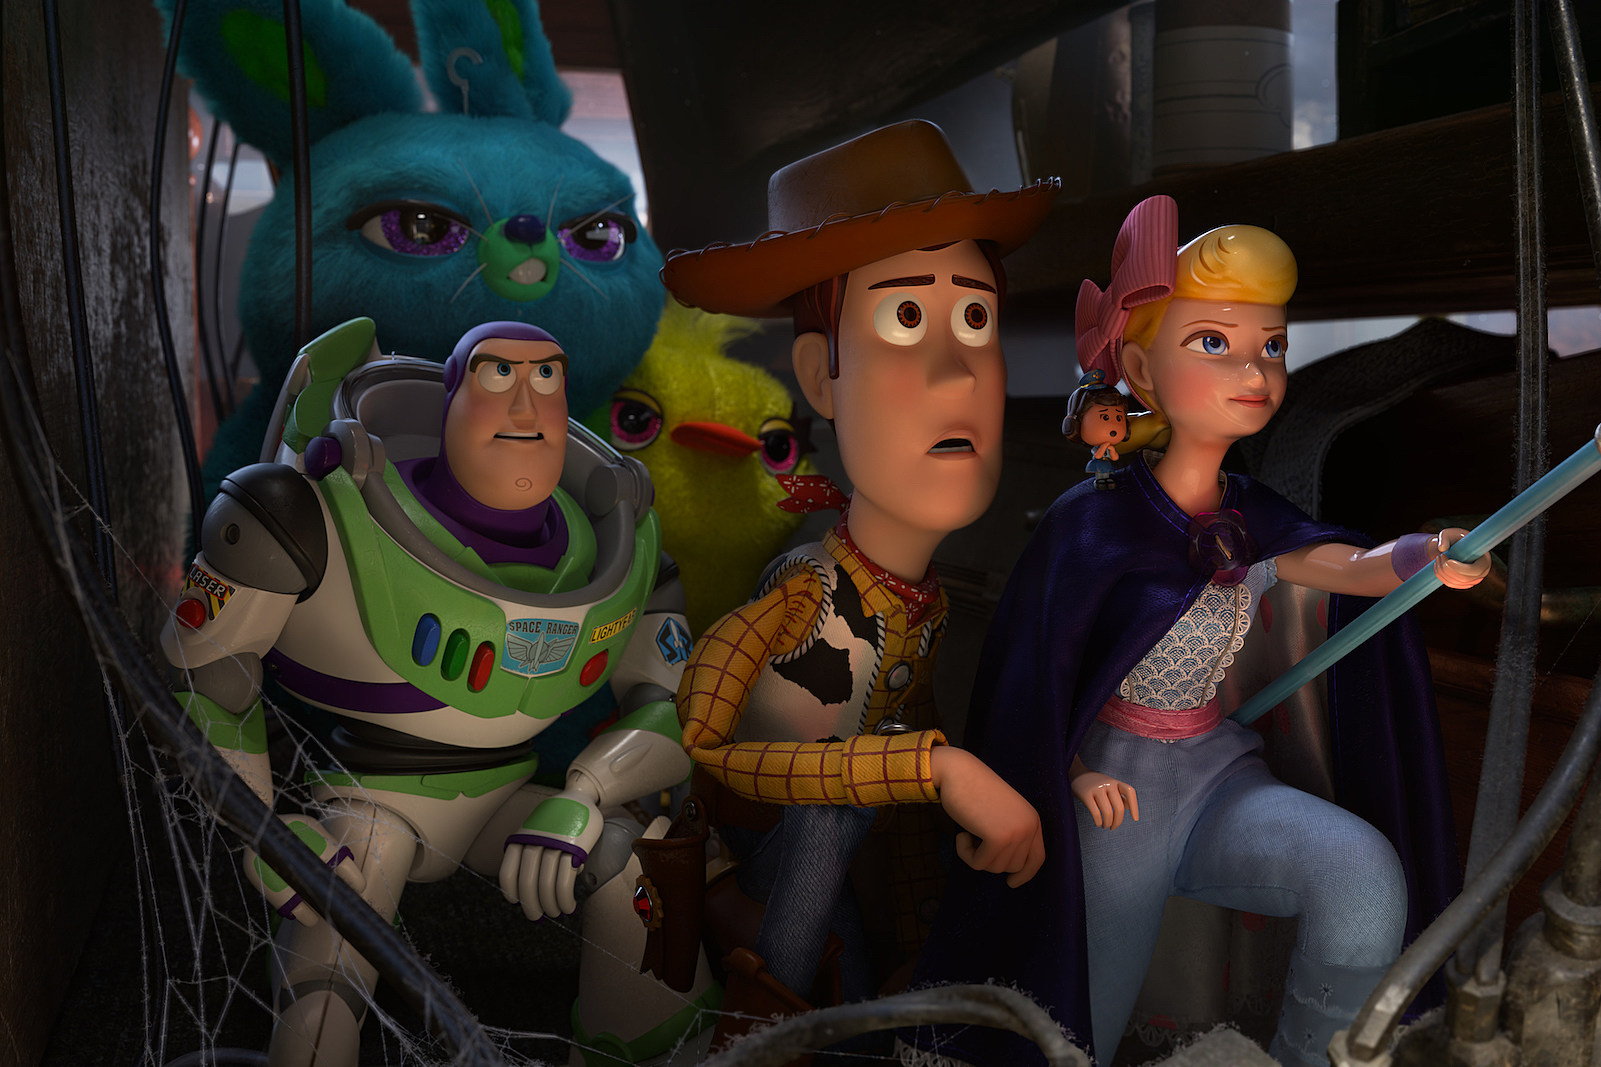 10 Things You Didn't Know About 'Monsters, Inc '